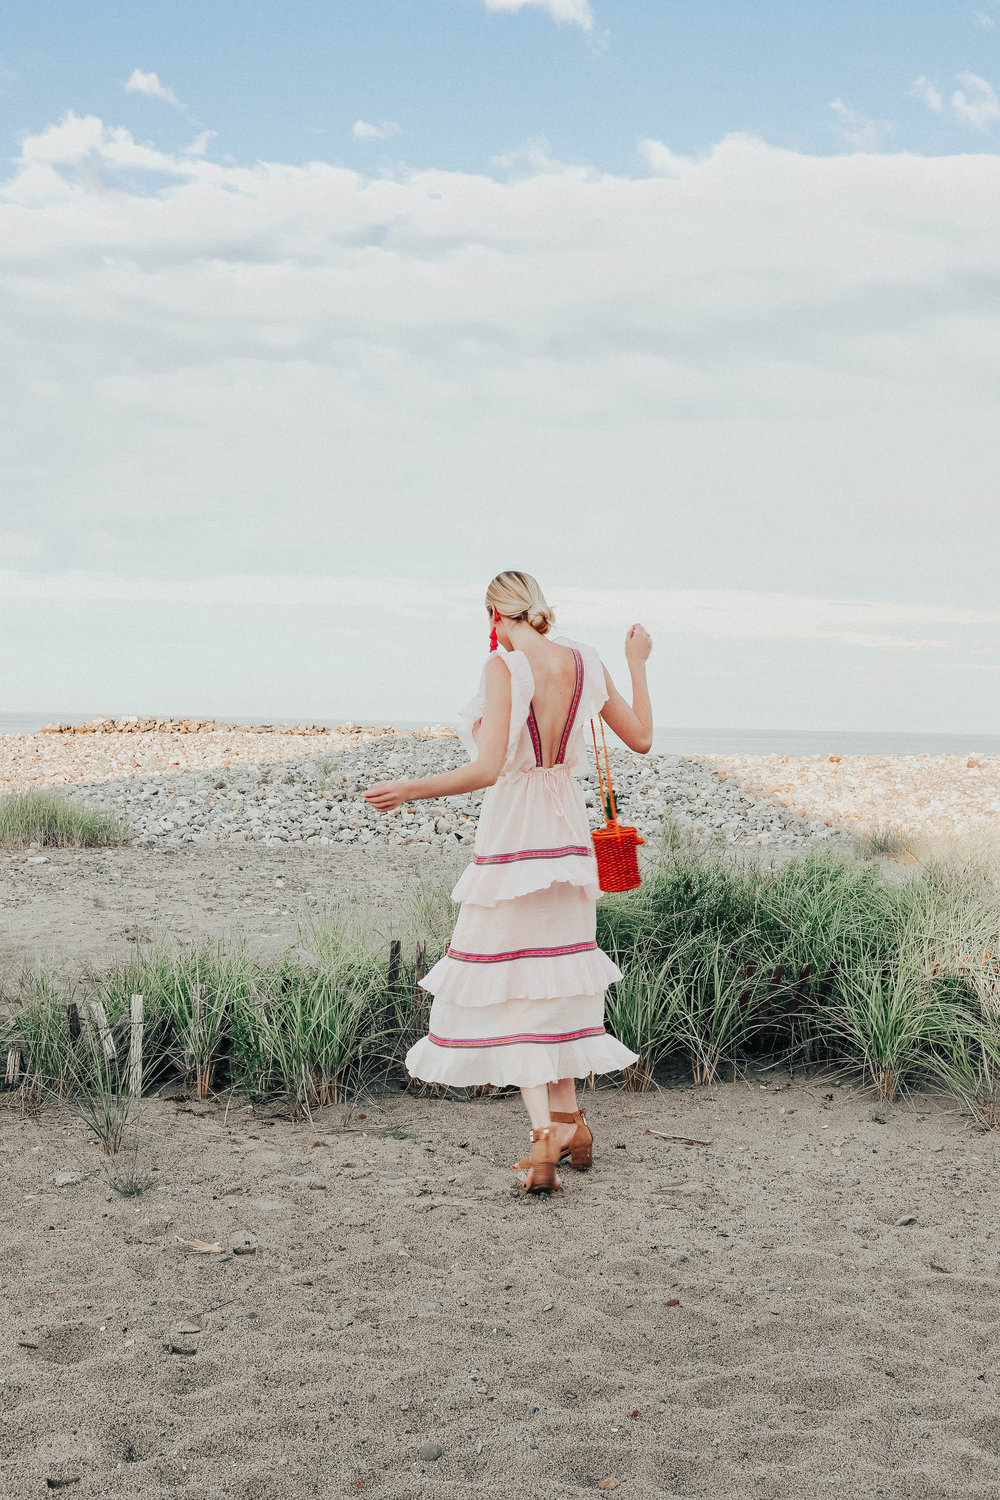 Vacation Outfit Inspiration | @maevestier